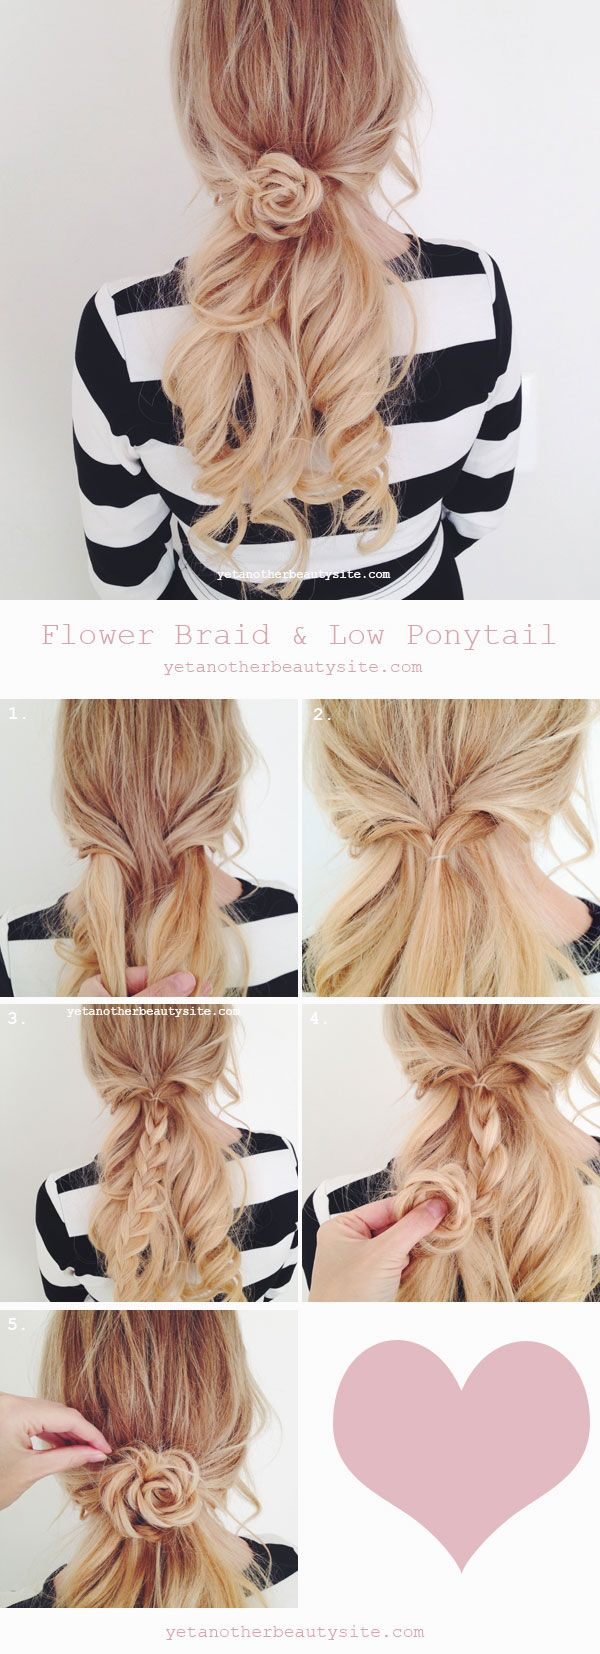 Low ponytail & Flower braid from yetanotherbeautysite.com #hairtutorials #hair #braids